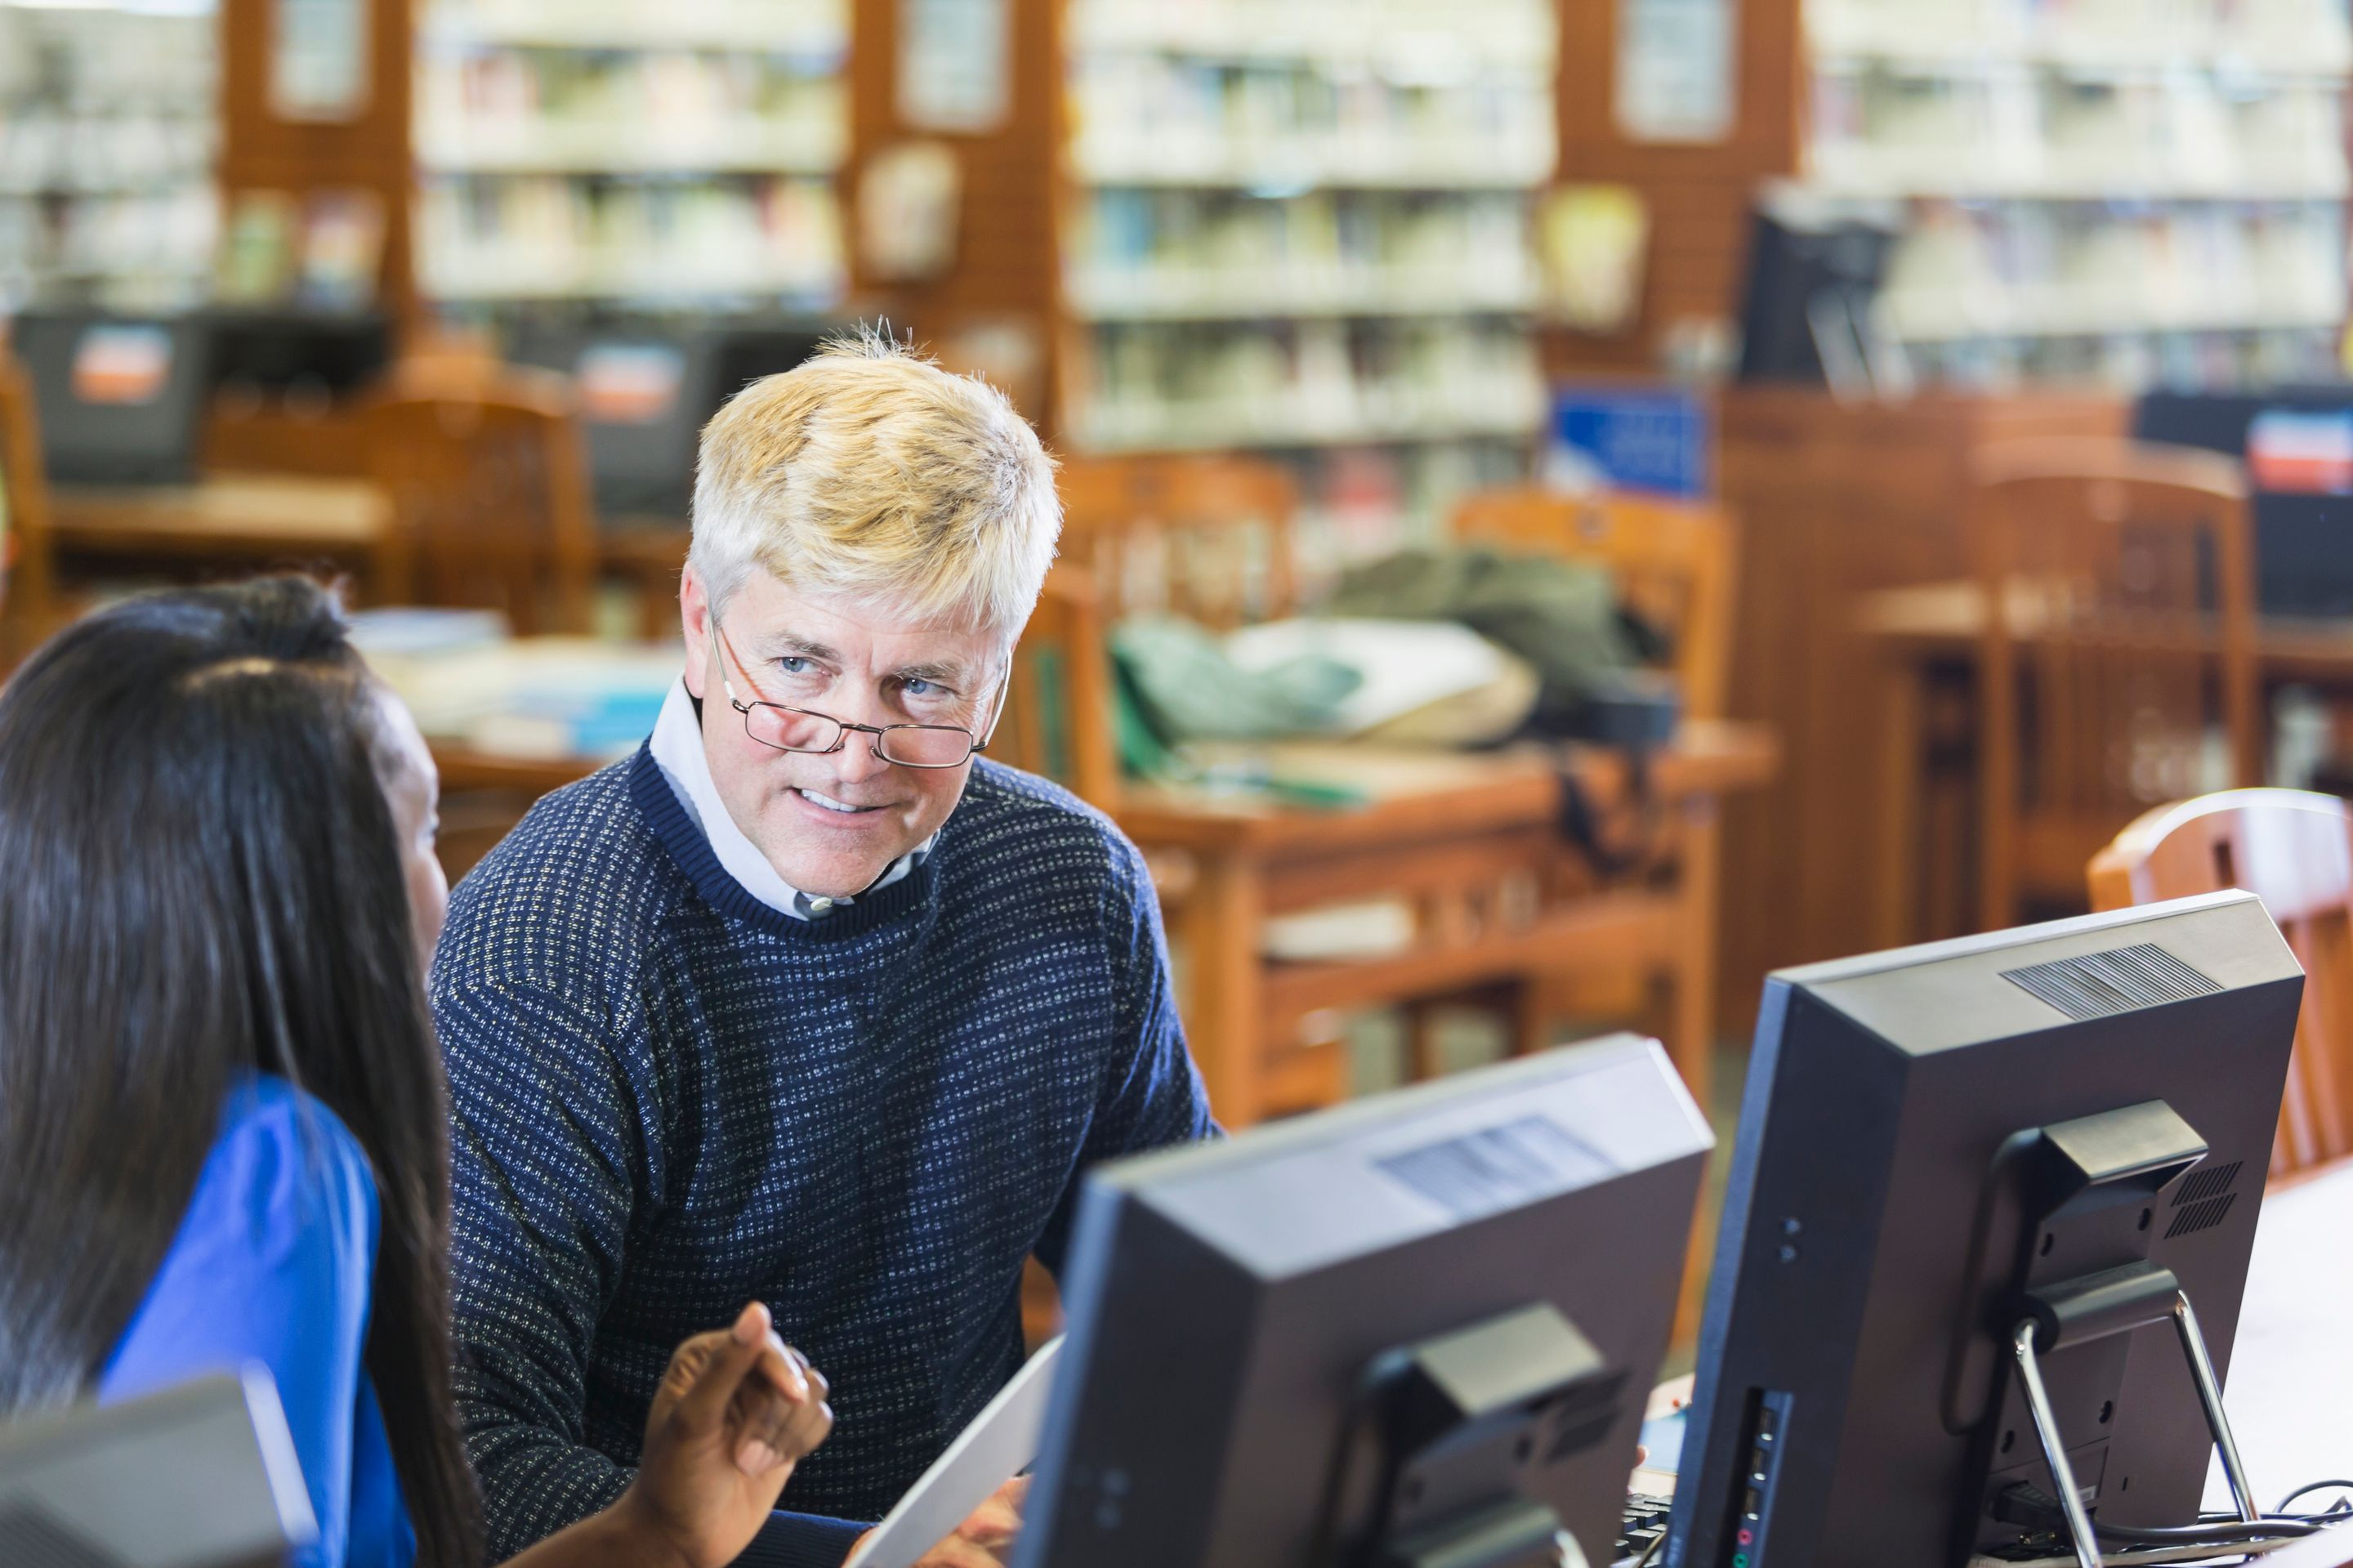 Two teachers talking in a library in front of computer monitors